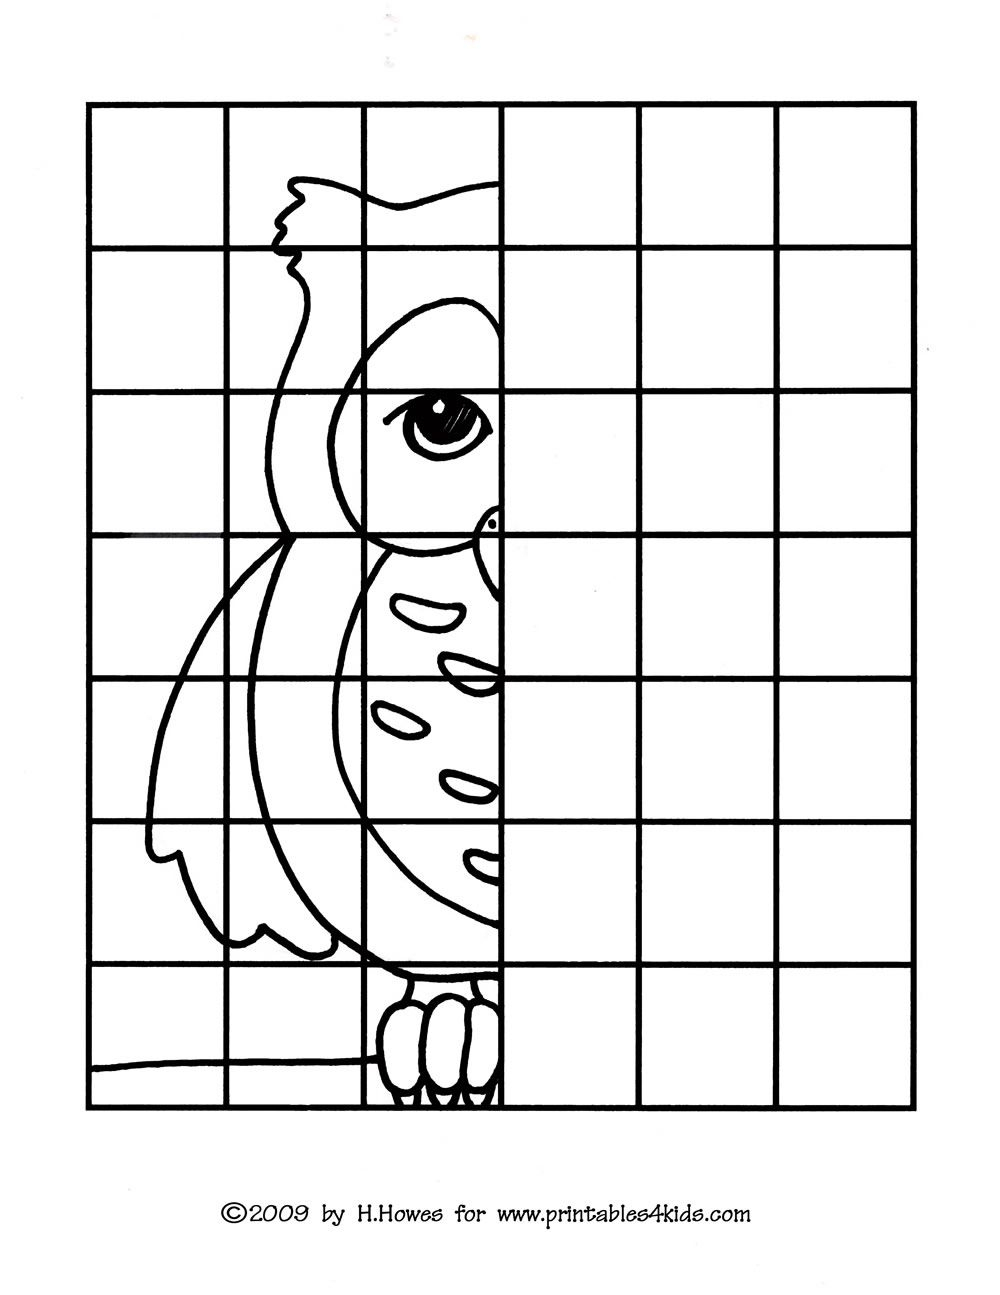 15 Drawing Worksheets Owl For Free Download On Ayoqq - Free Printable Drawing Worksheets